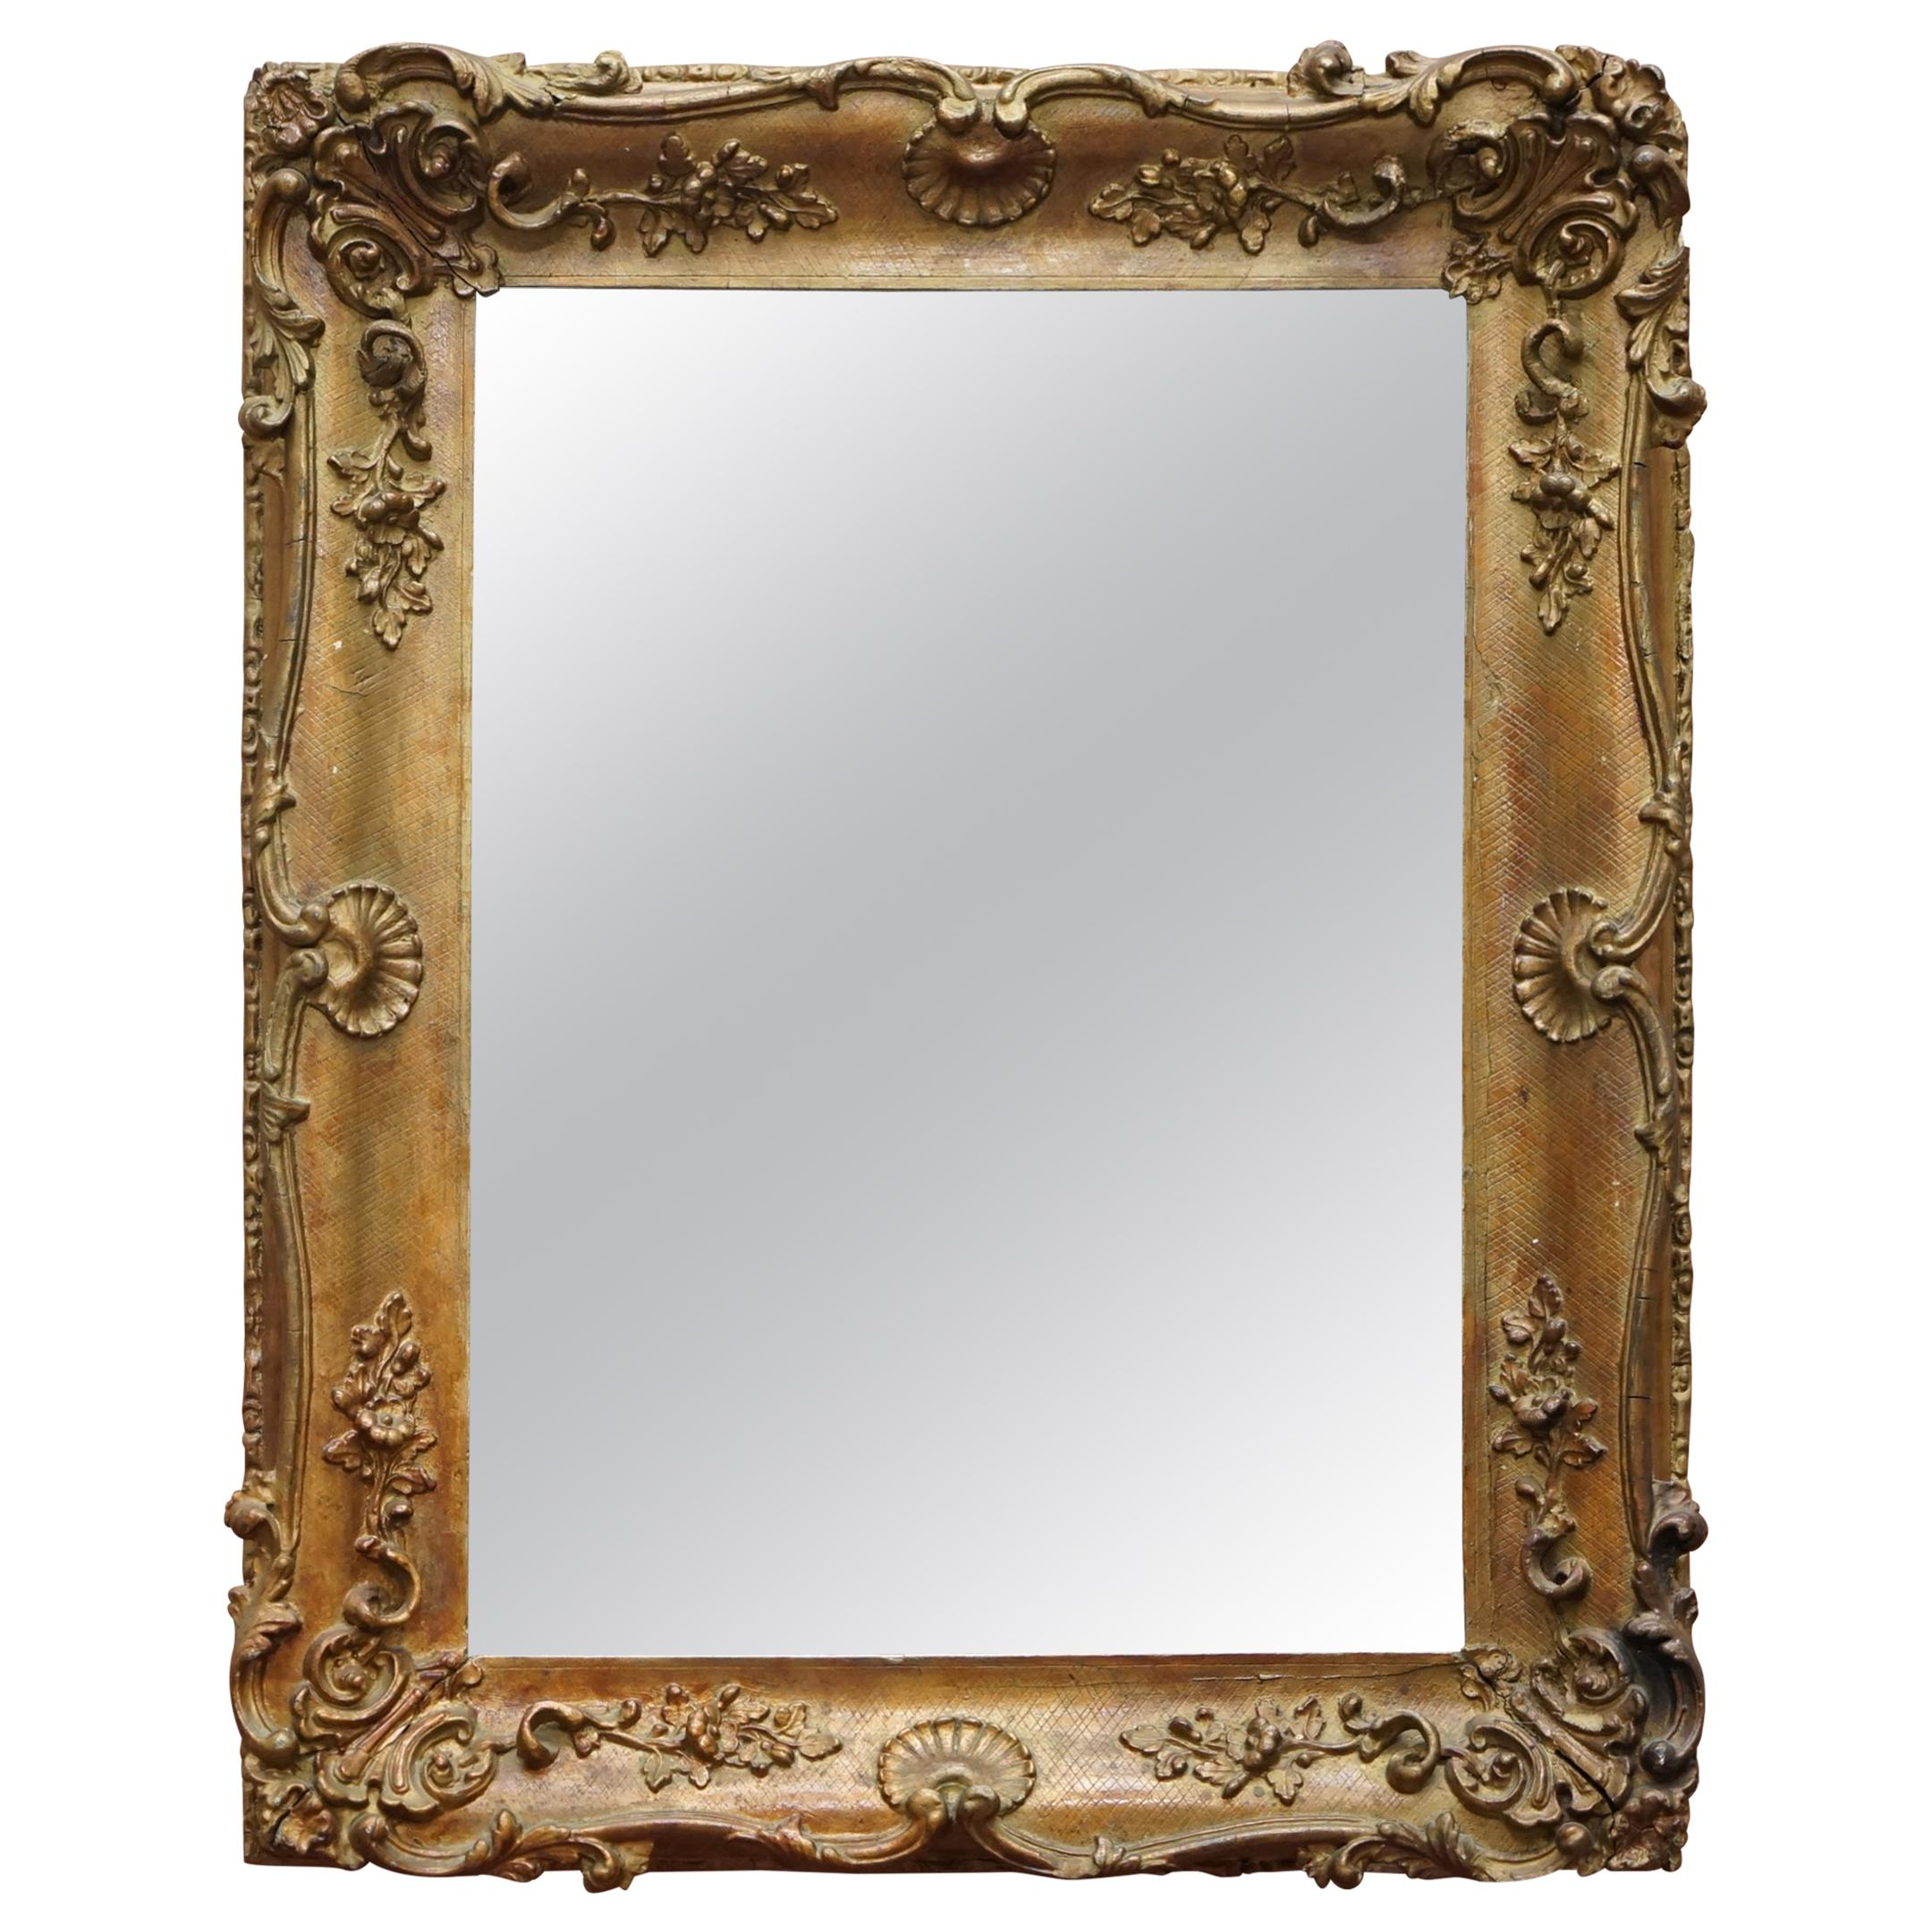 Lovely circa 1880-1900 French Giltwood Wall Mirror with Ornately Carved Frame